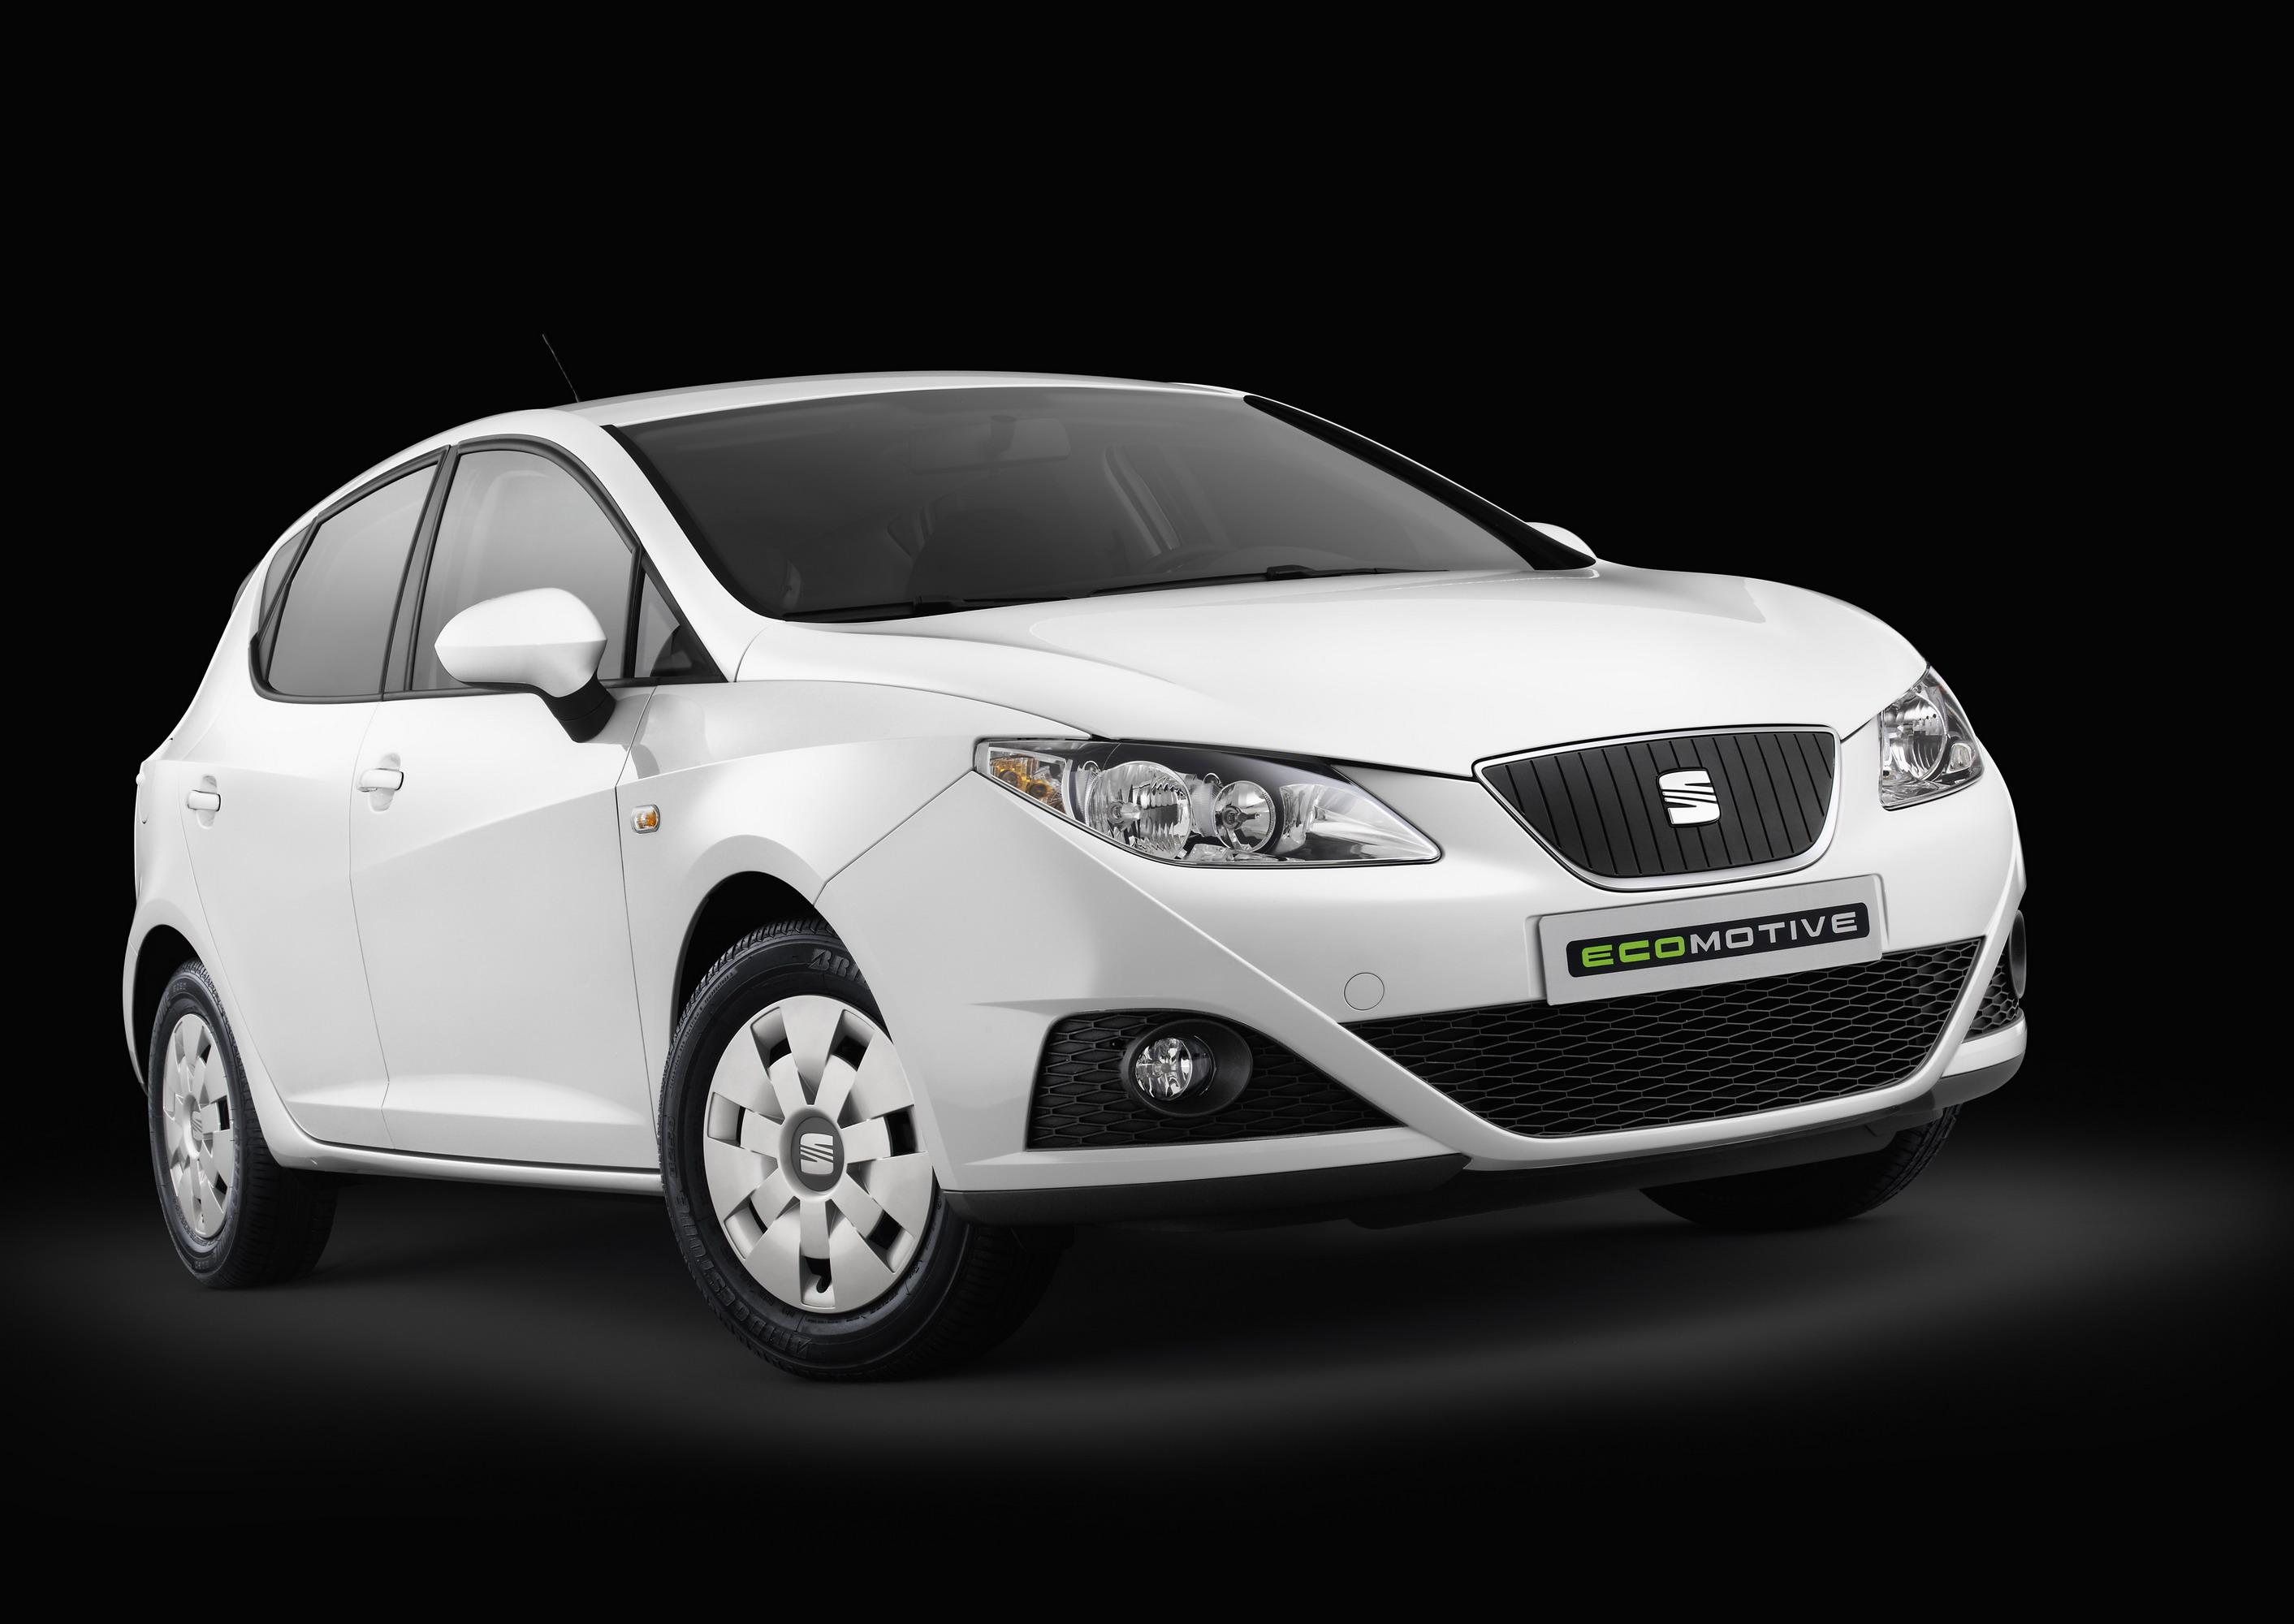 2009 seat ibiza ecomotive top speed. Black Bedroom Furniture Sets. Home Design Ideas